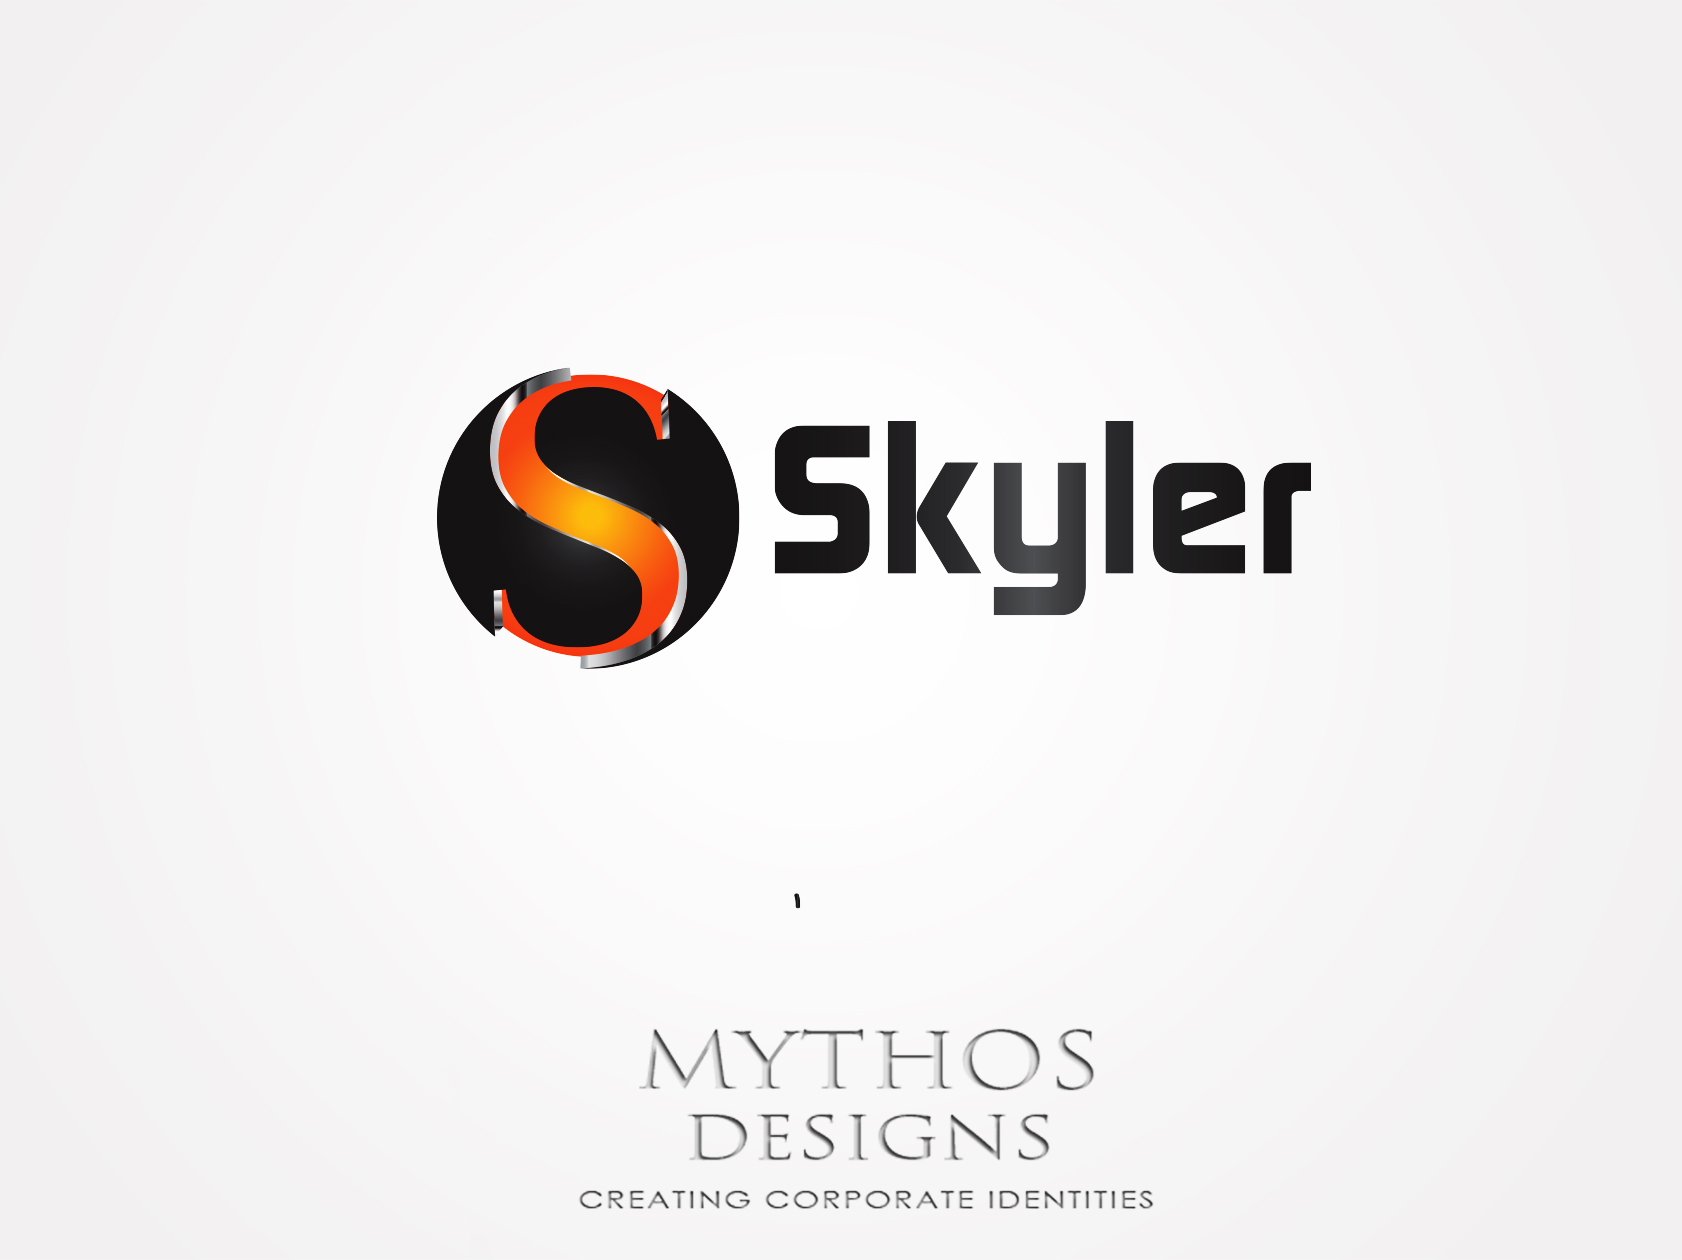 Logo Design by Mythos Designs - Entry No. 35 in the Logo Design Contest Artistic Logo Design for Skyler.Asia.